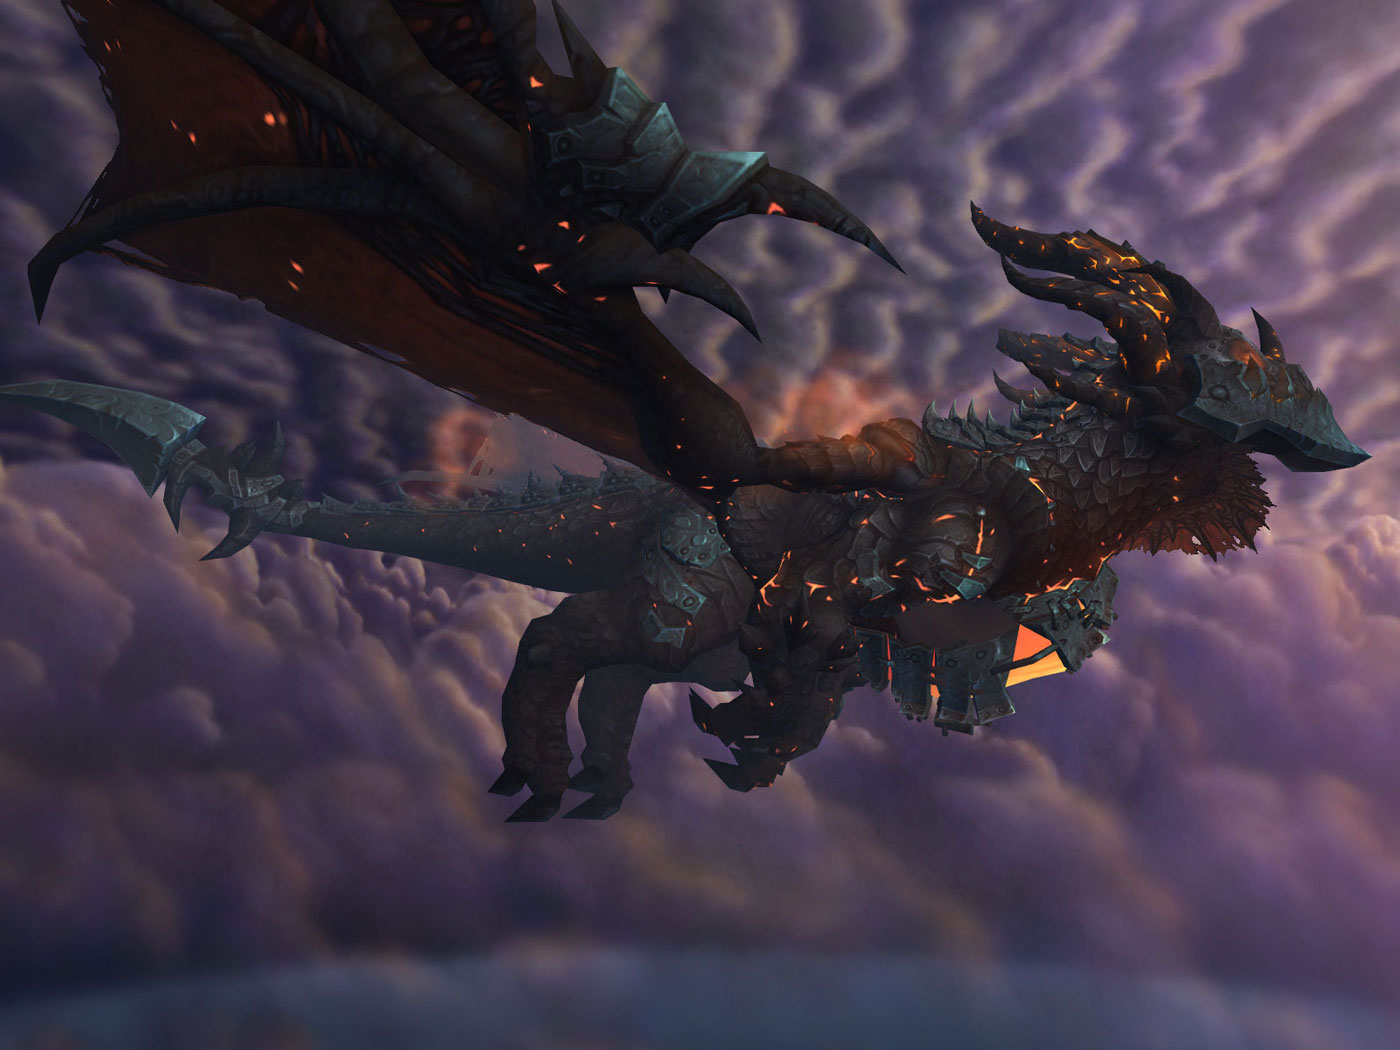 War Against Deathwing Wowpedia Your Wiki Guide To The World Of Warcraft 2,234 likes · 2 talking about this. war against deathwing wowpedia your